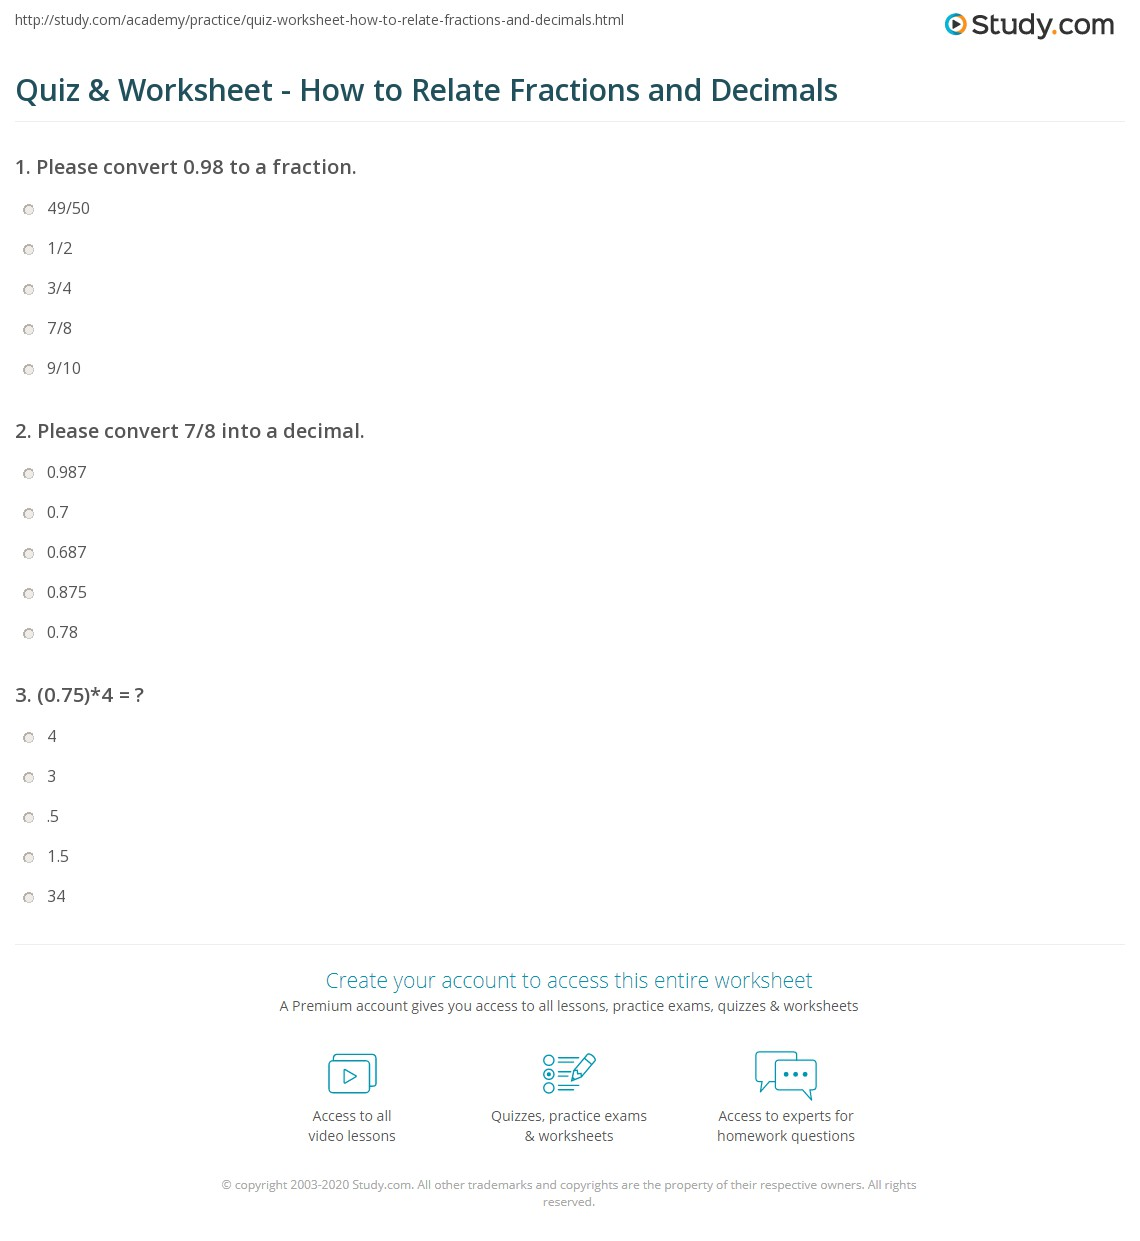 worksheet Free Pythagorean Theorem Worksheet Quiz & Worksheet - How to Relate Fractions and Decimals | St